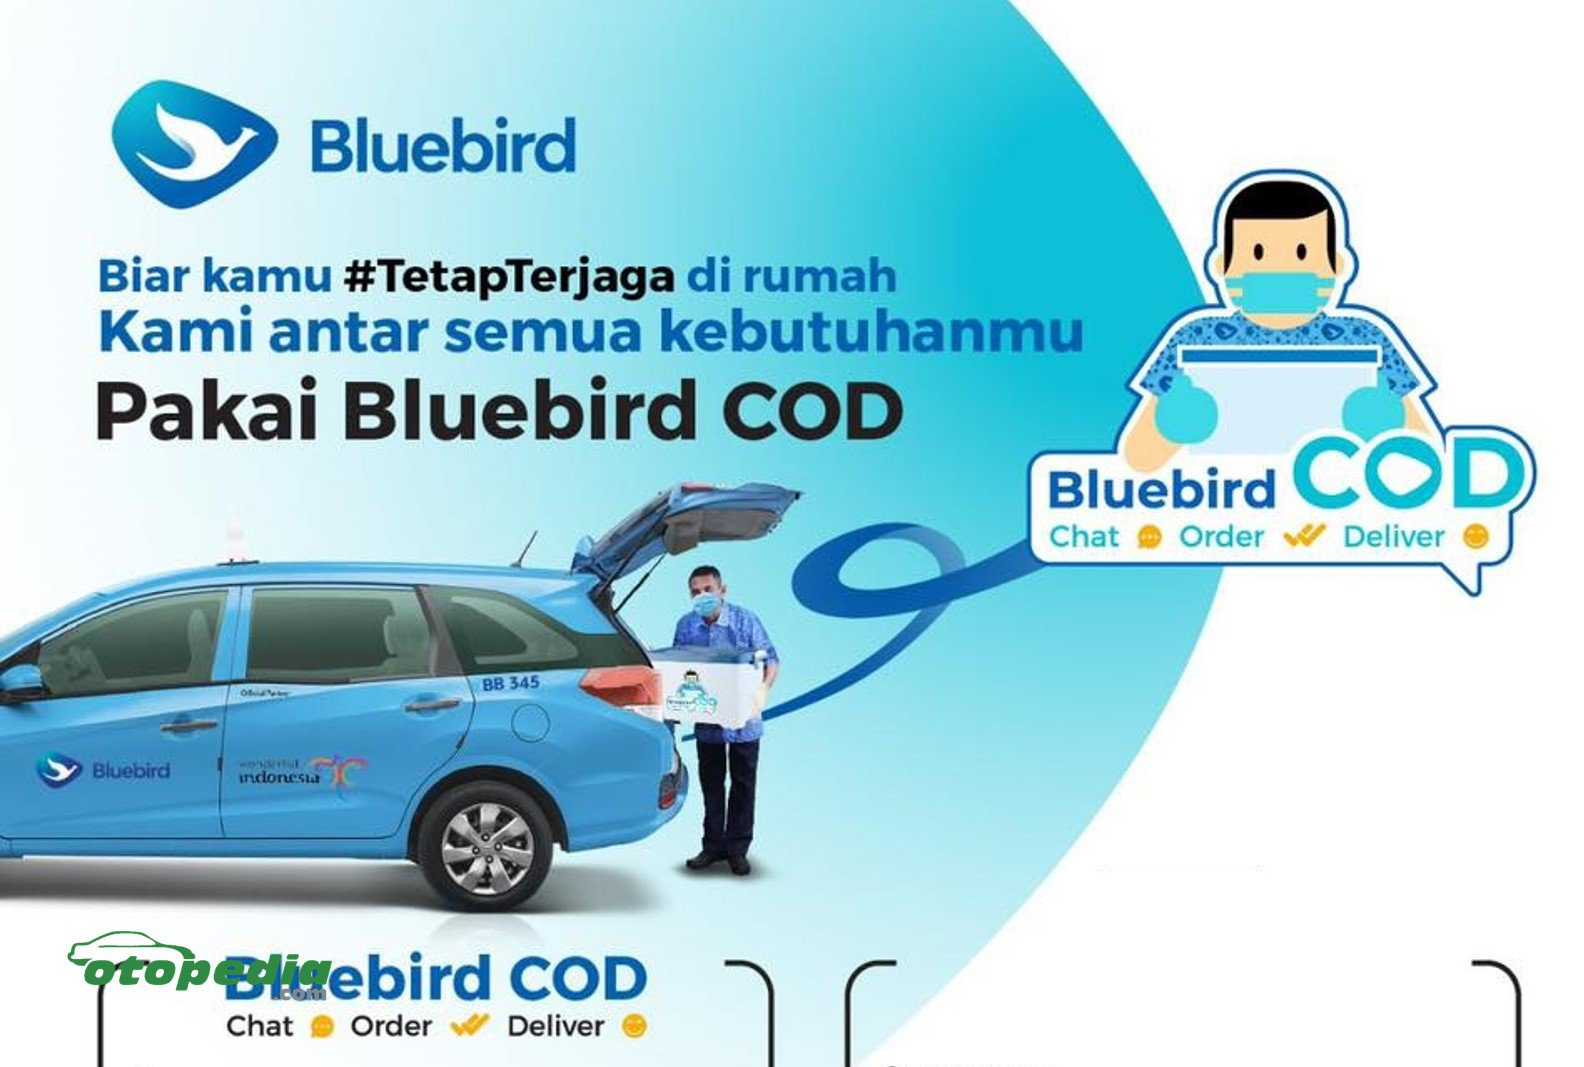 /media/images/bluebird-tetapterjaga-3.original.jpg